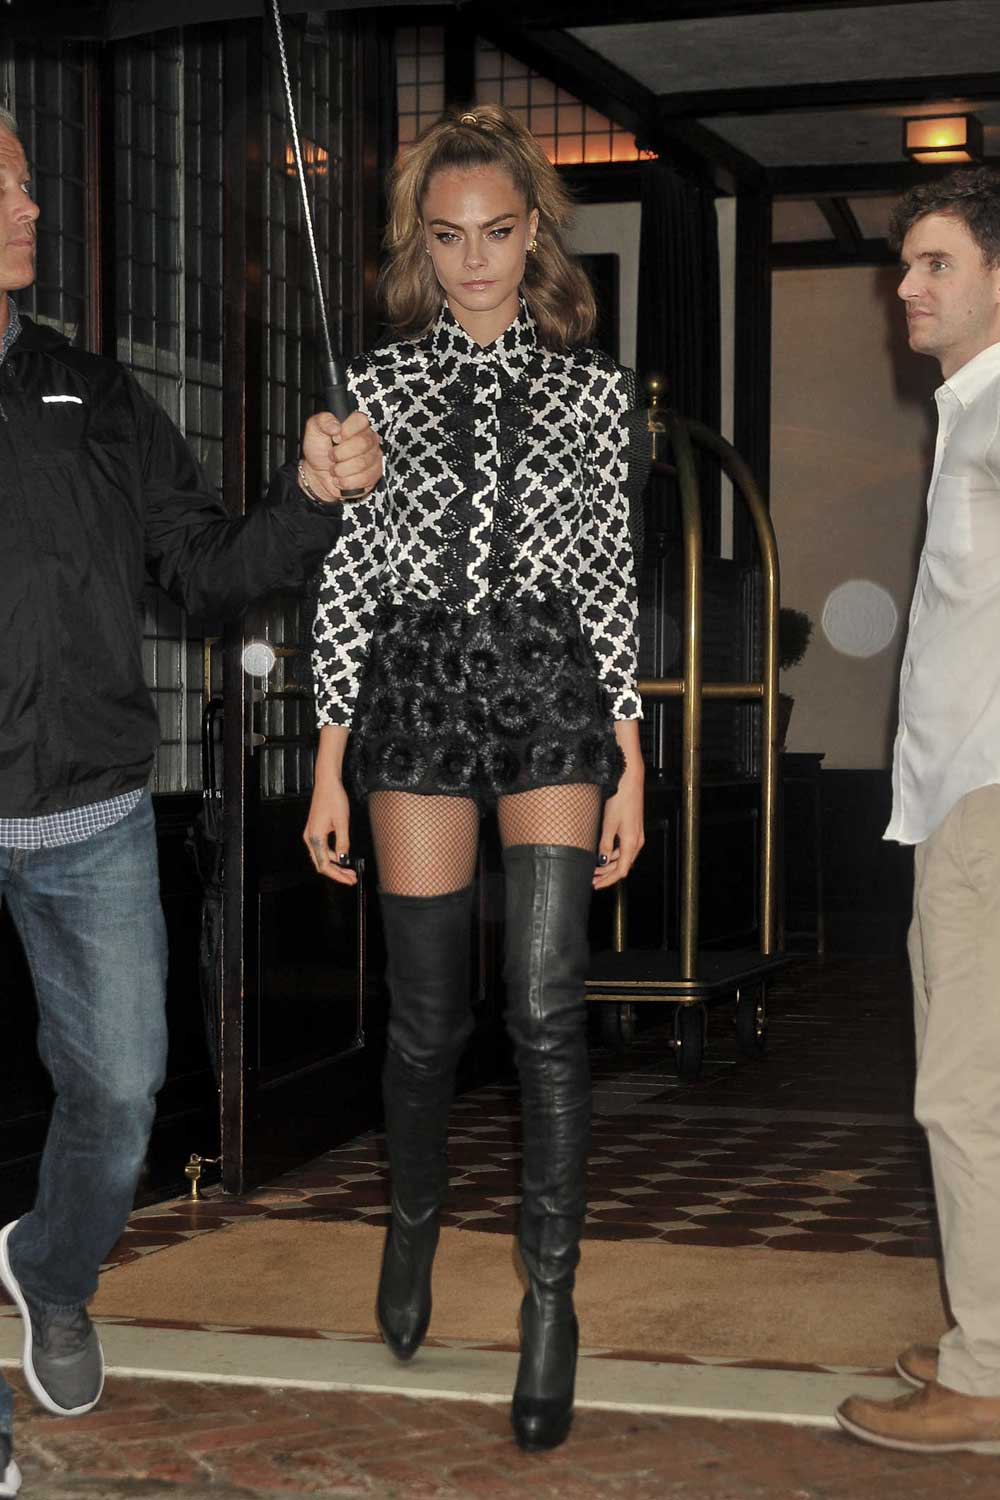 Cara Delevingne out in NYC